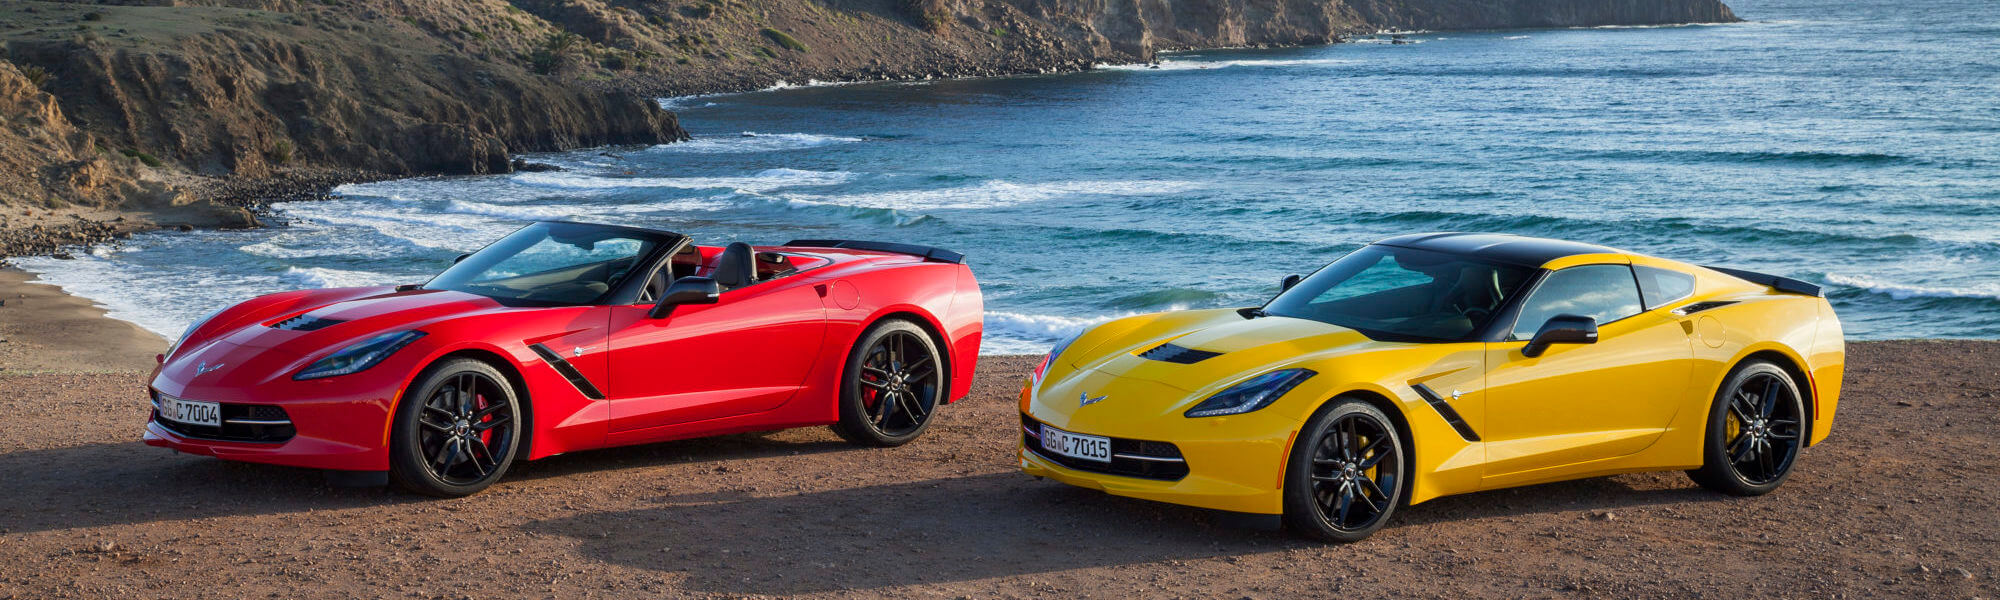 Chevrolet Corvette Stingray Coupe and Convertible